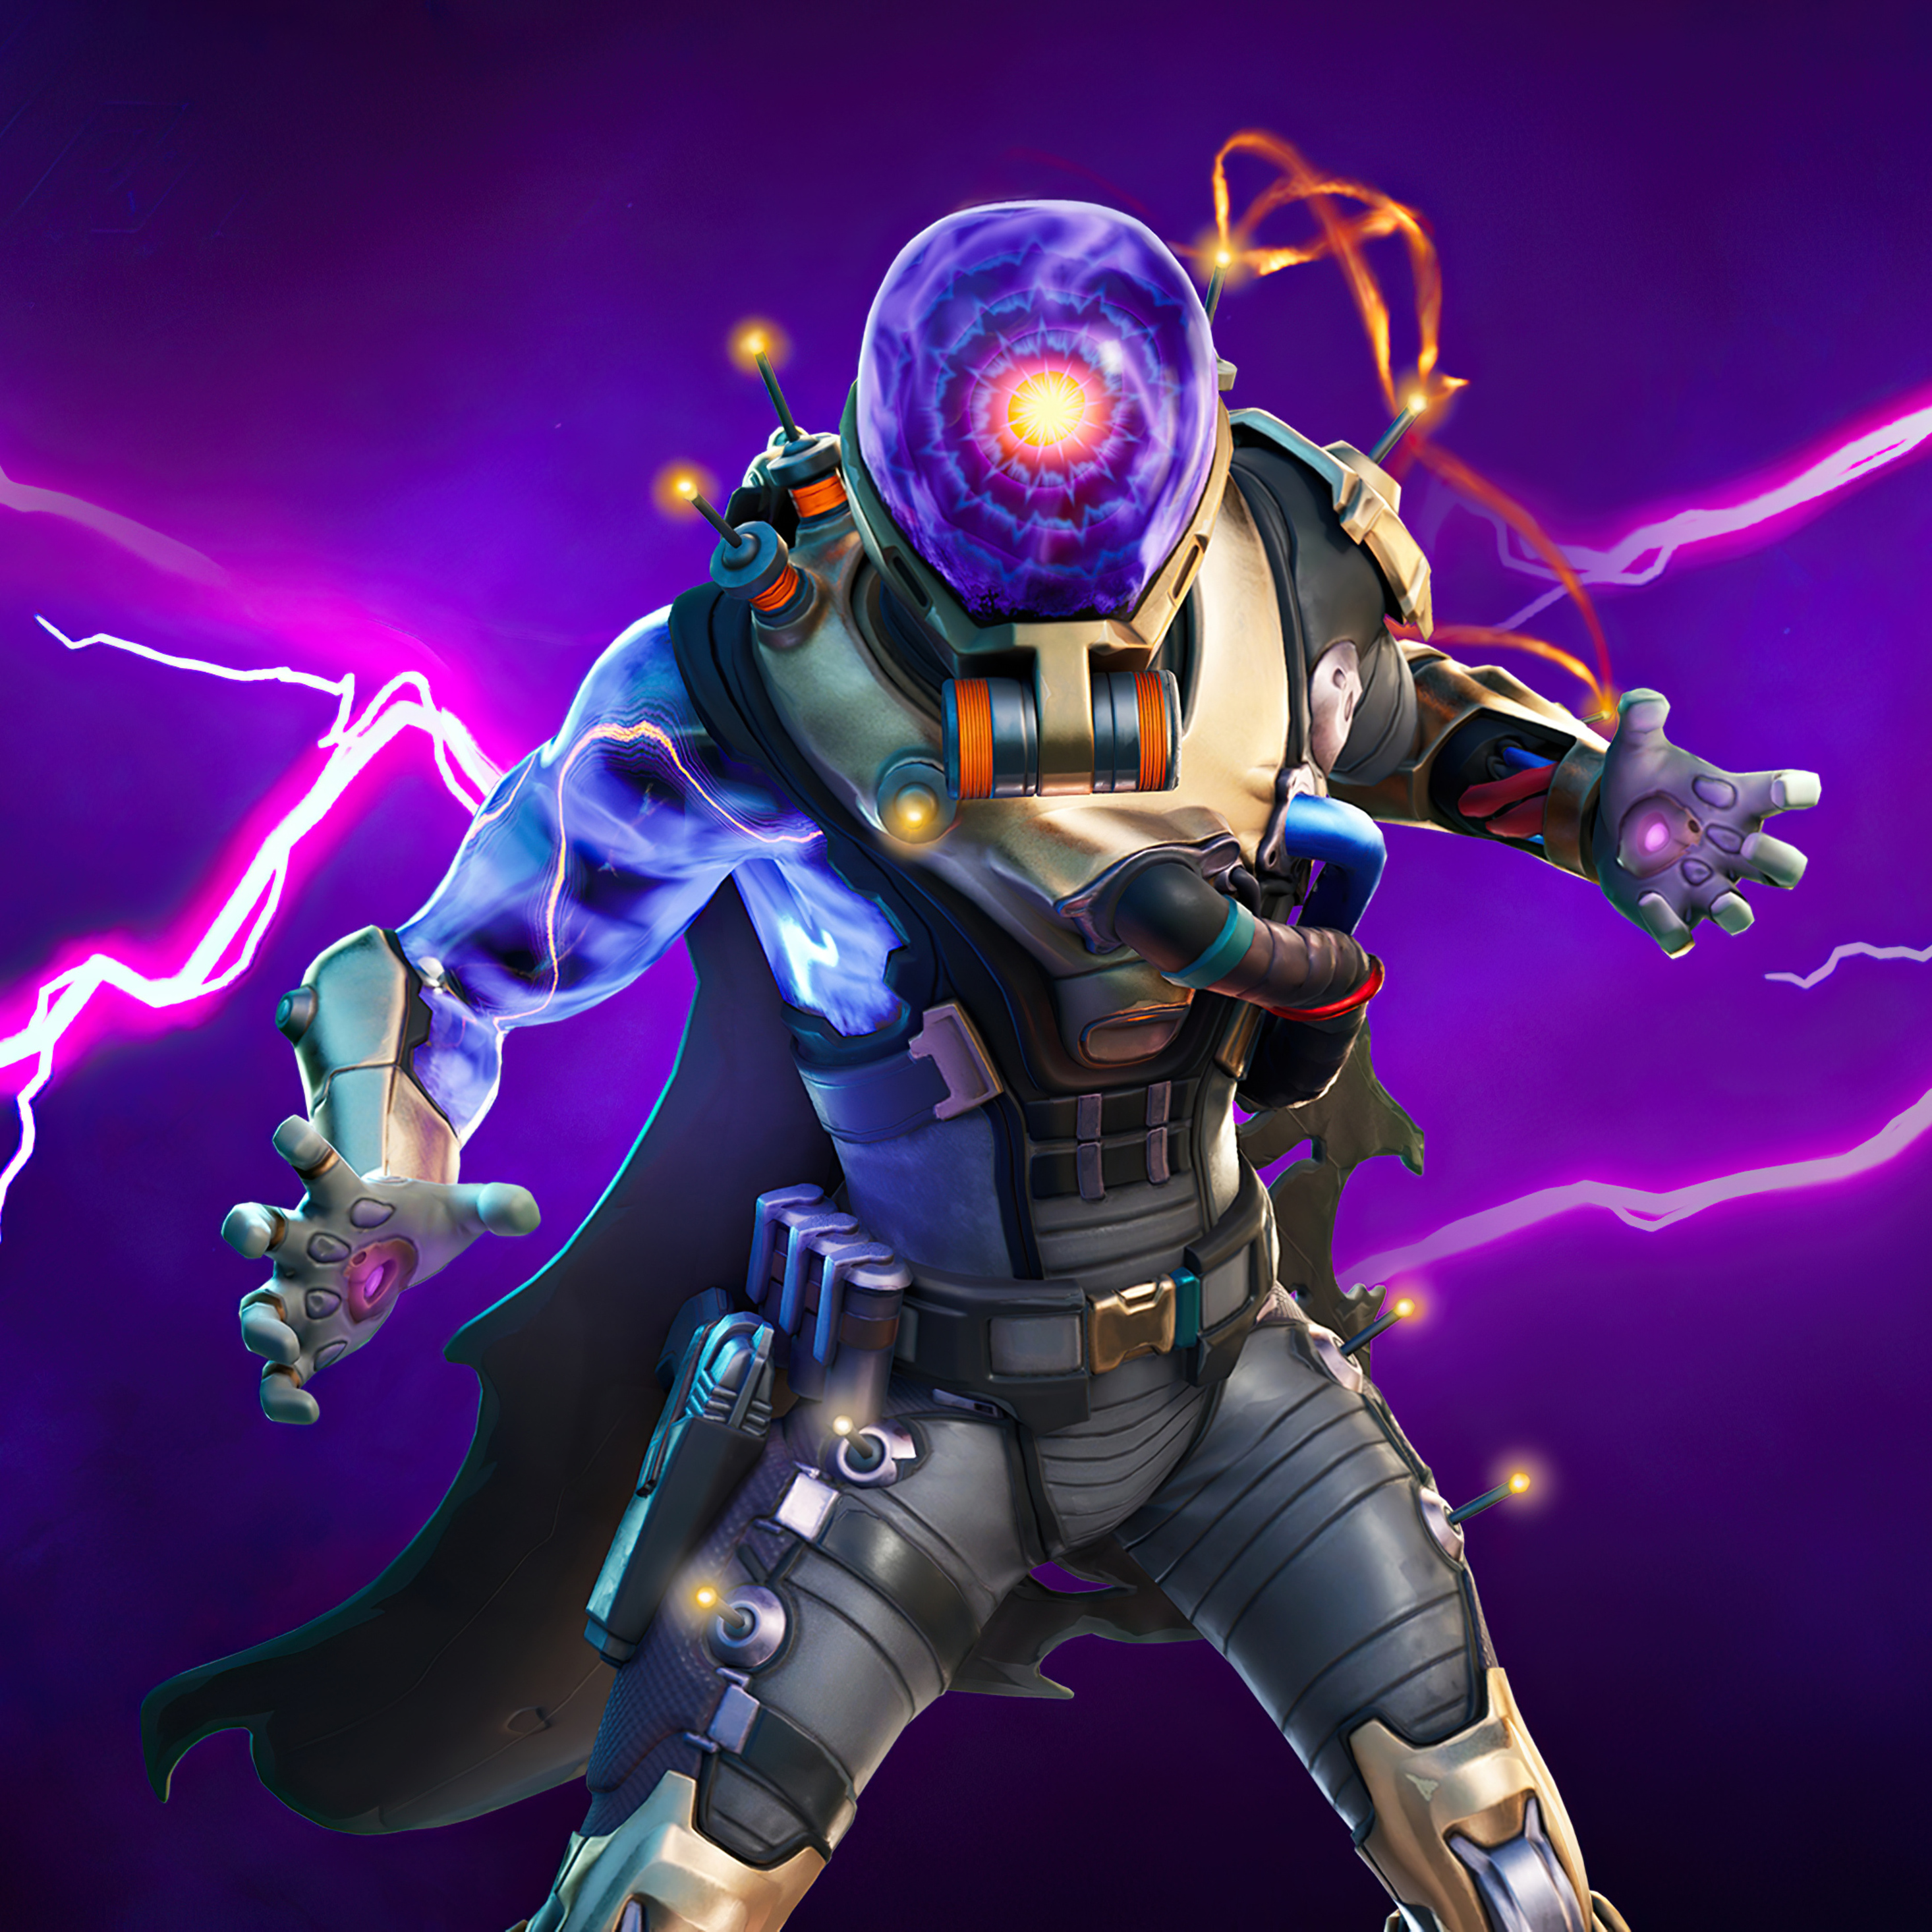 2932x2932 Fortnite Chapter 2 Season 3 Cyclo Outfit Ipad Pro Retina Display Hd 4k Wallpapers Images Backgrounds Photos And Pictures